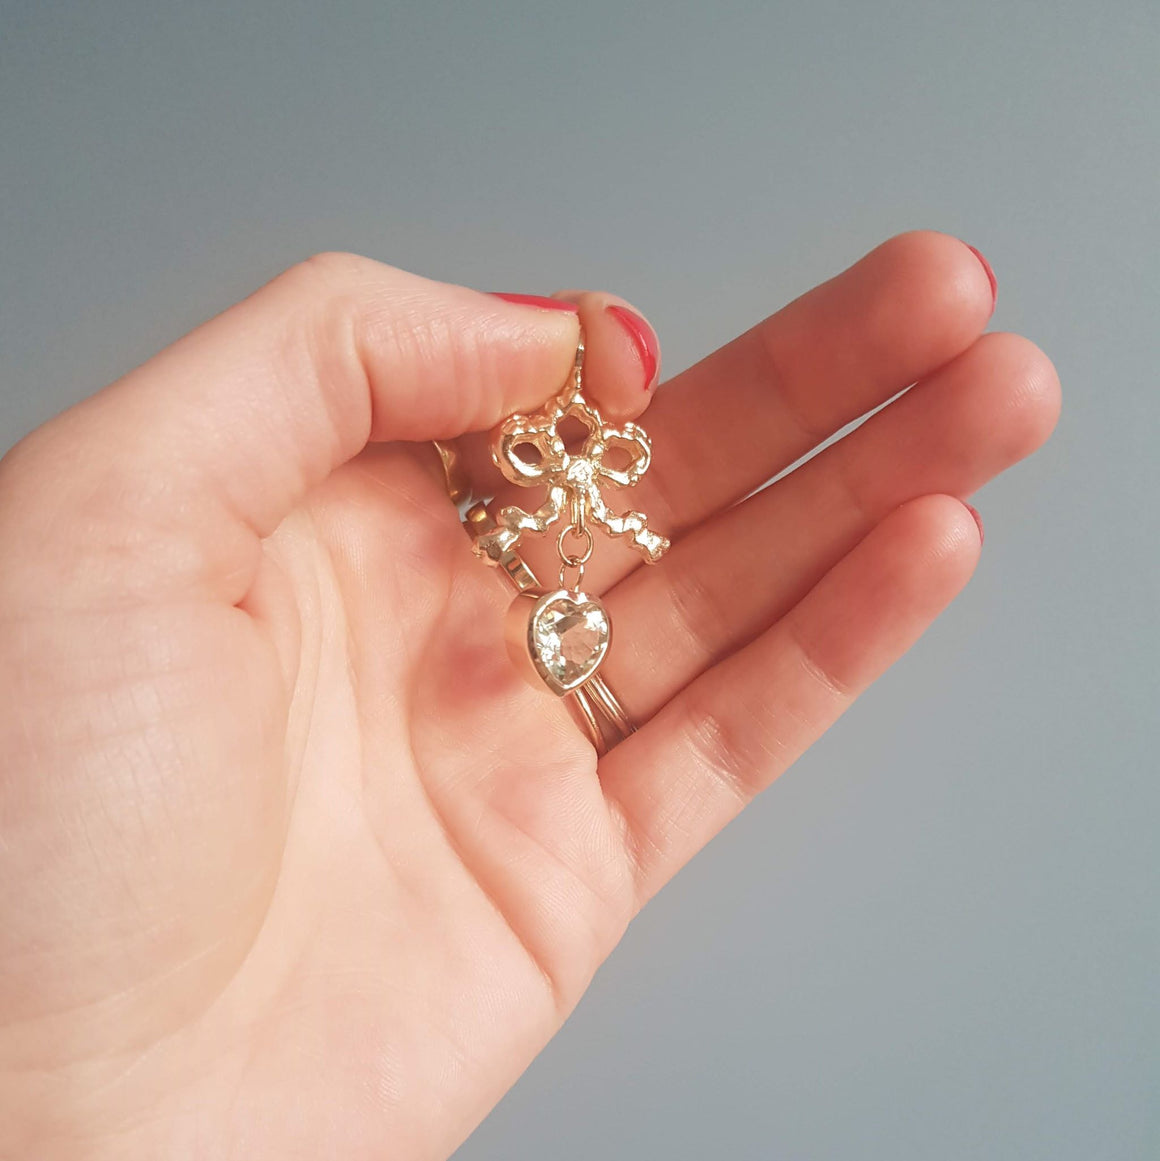 Solid gold bow and green amethyst heart pendant ella green irish jewellery designer